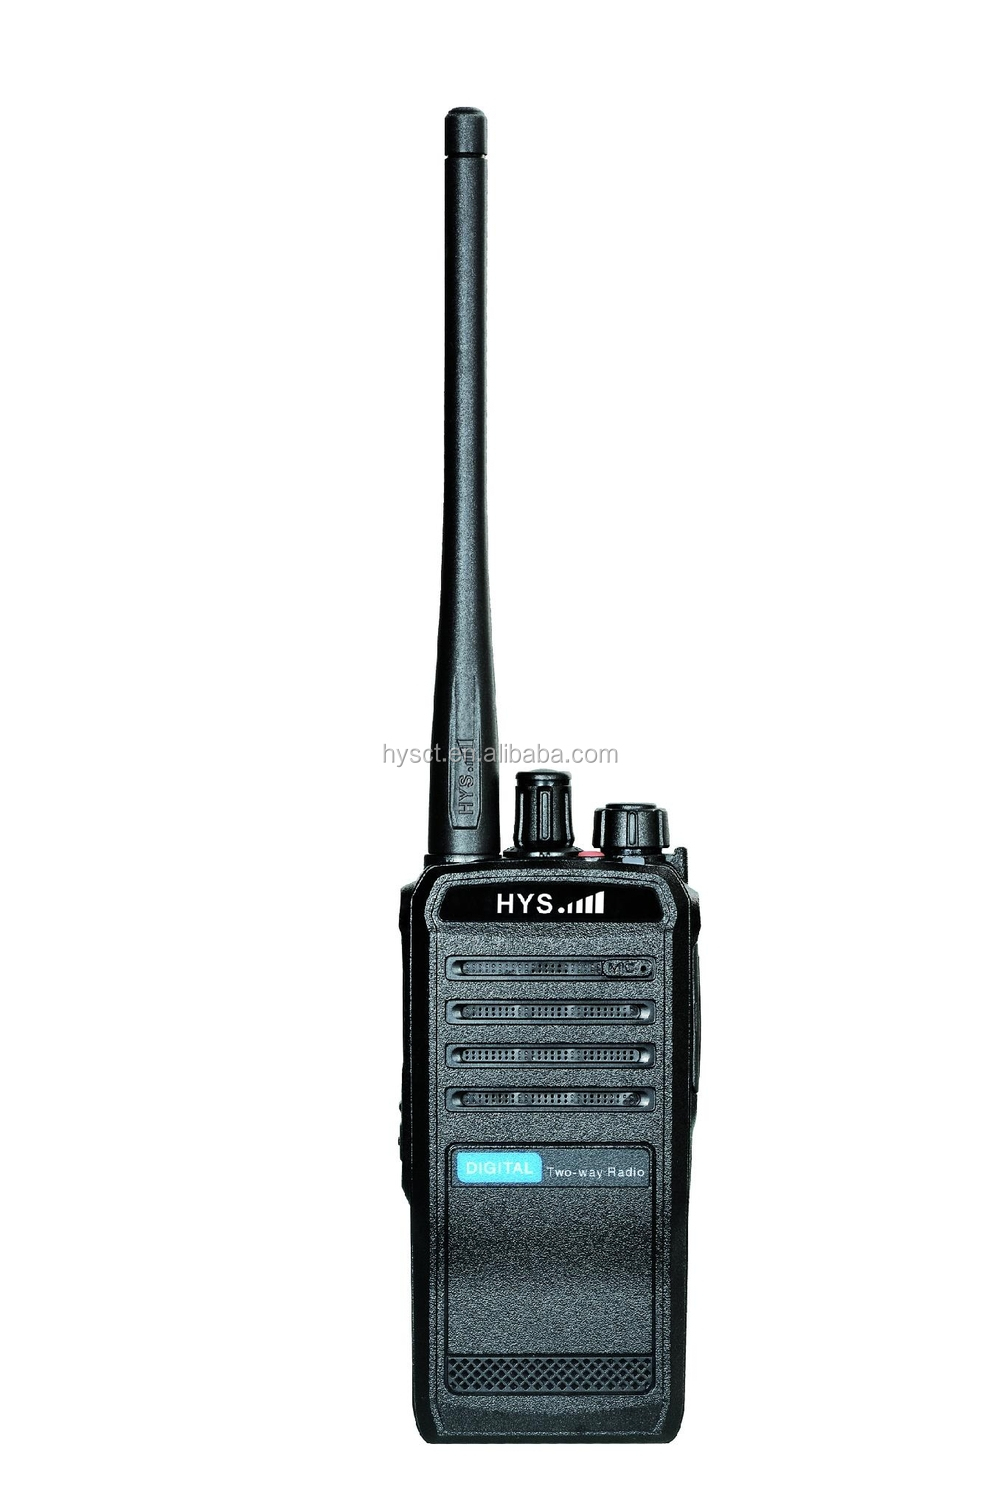 TC-818DP [New] Wireless radio 16channel UV radio digital two way radios